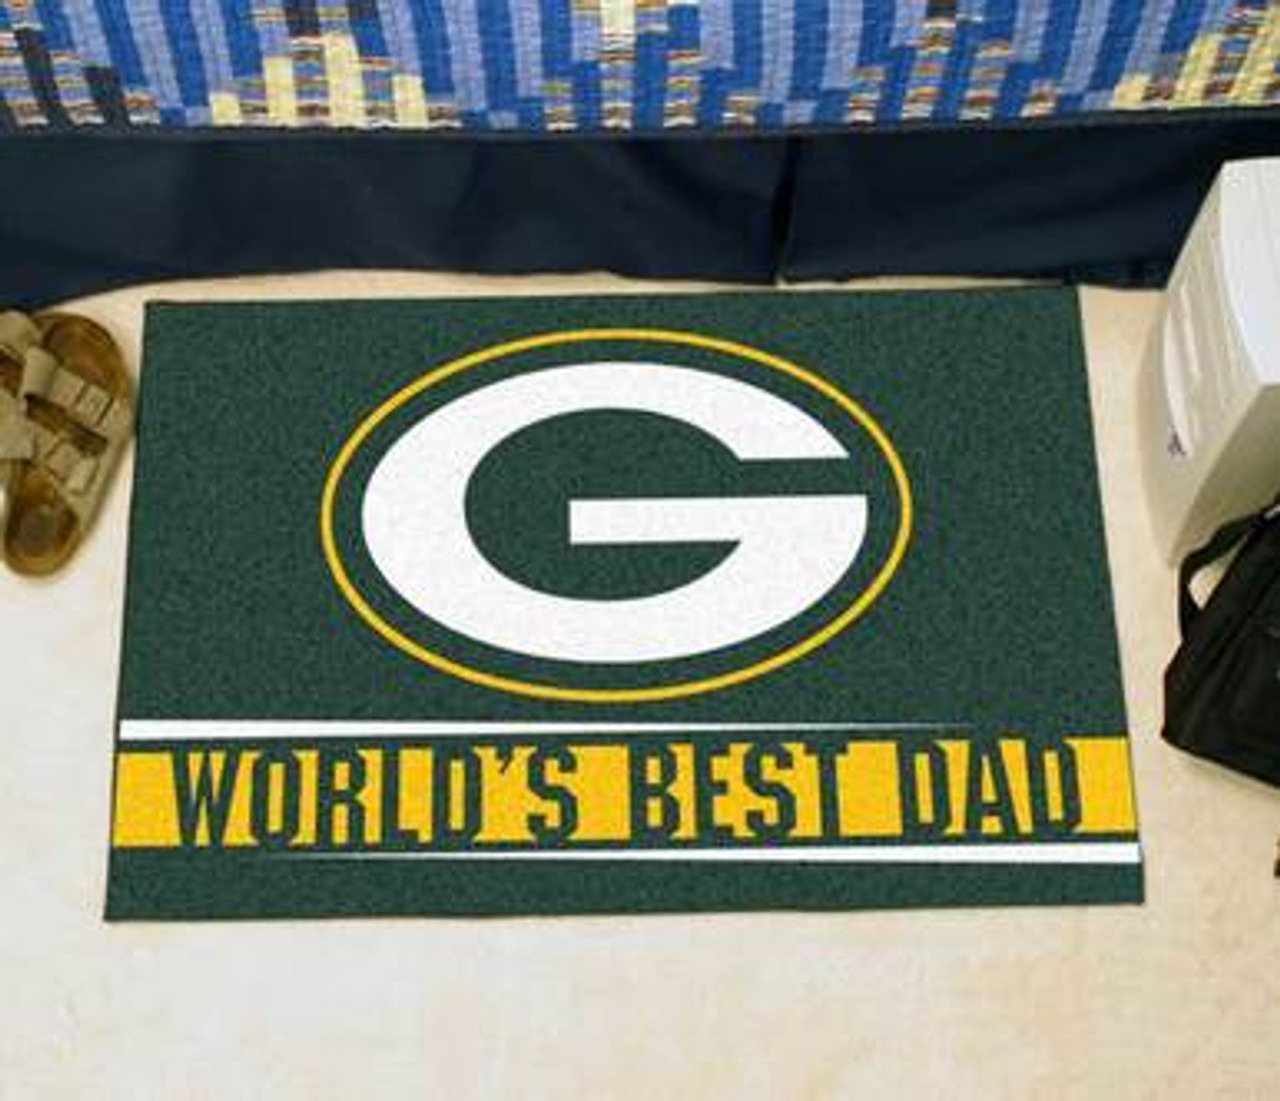 Packers Best Dad Floor Mat | Sports Licensing Solutions